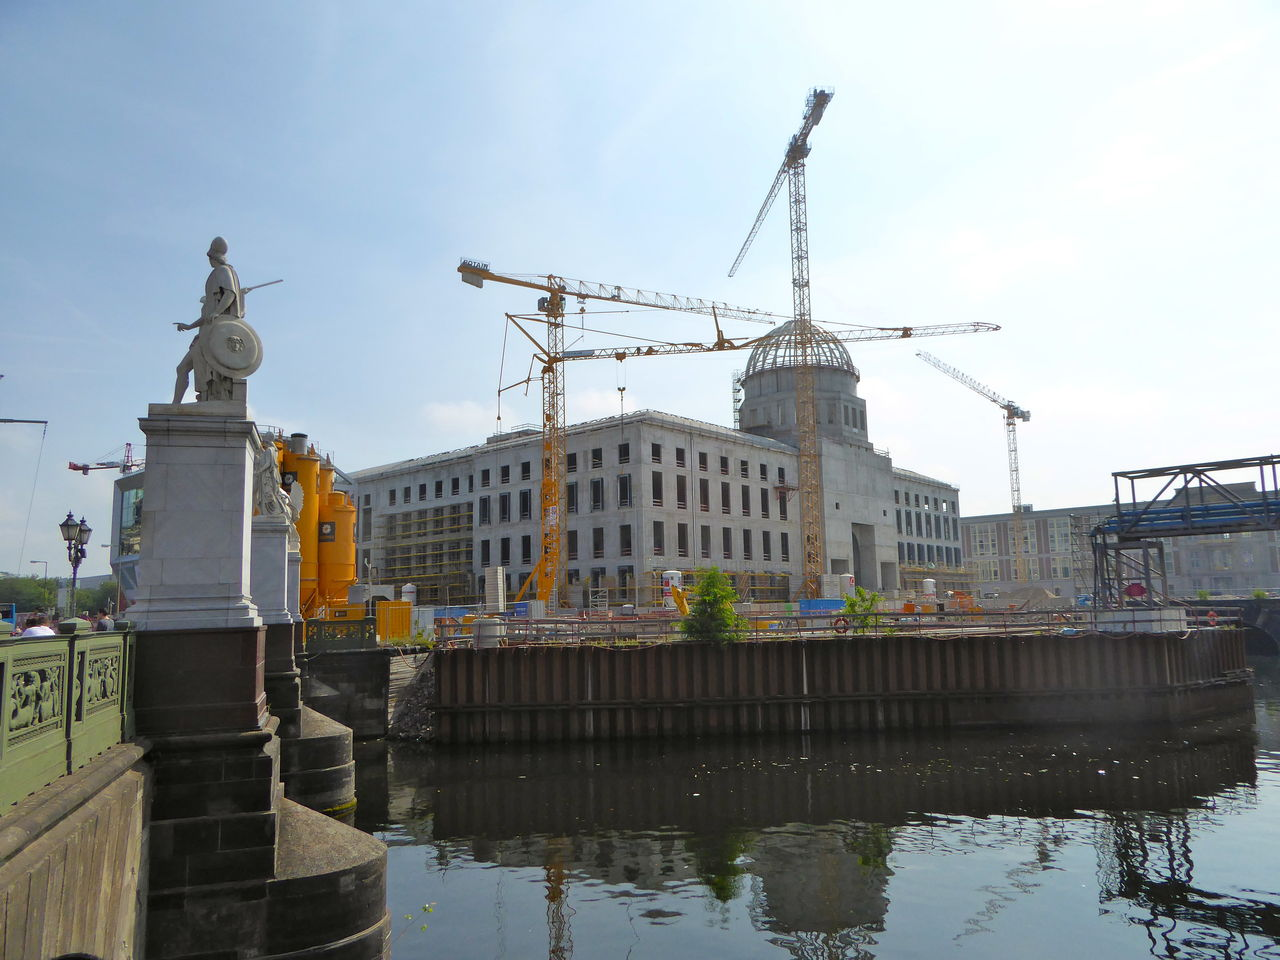 Architecture Being Built Berliner Schloss Concrete Cranes And Construction Greek Statue In Berlin, New Ethnological Museum New Humboldt Forum Reconstruction Of Berlins City Palace Reflections In The Water Sky Water